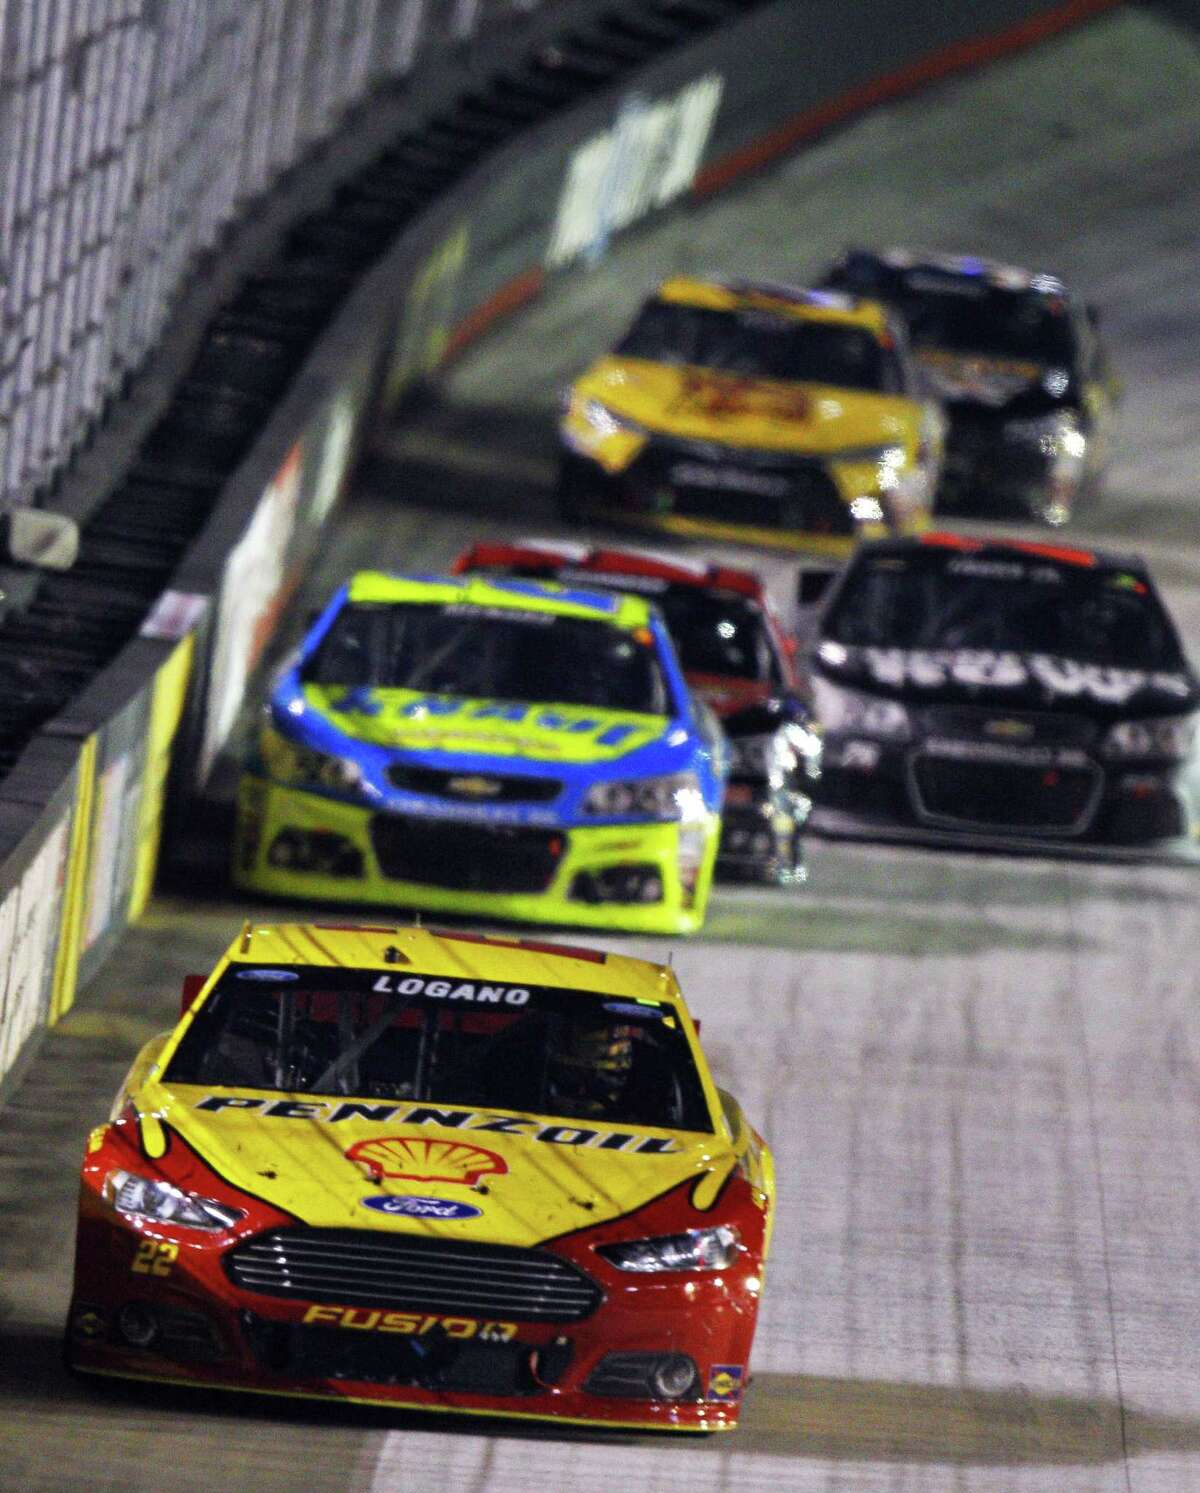 Joey Logano leads a group of cars during the NASCAR Sprint Cup race Saturday in Bristol, Tenn.